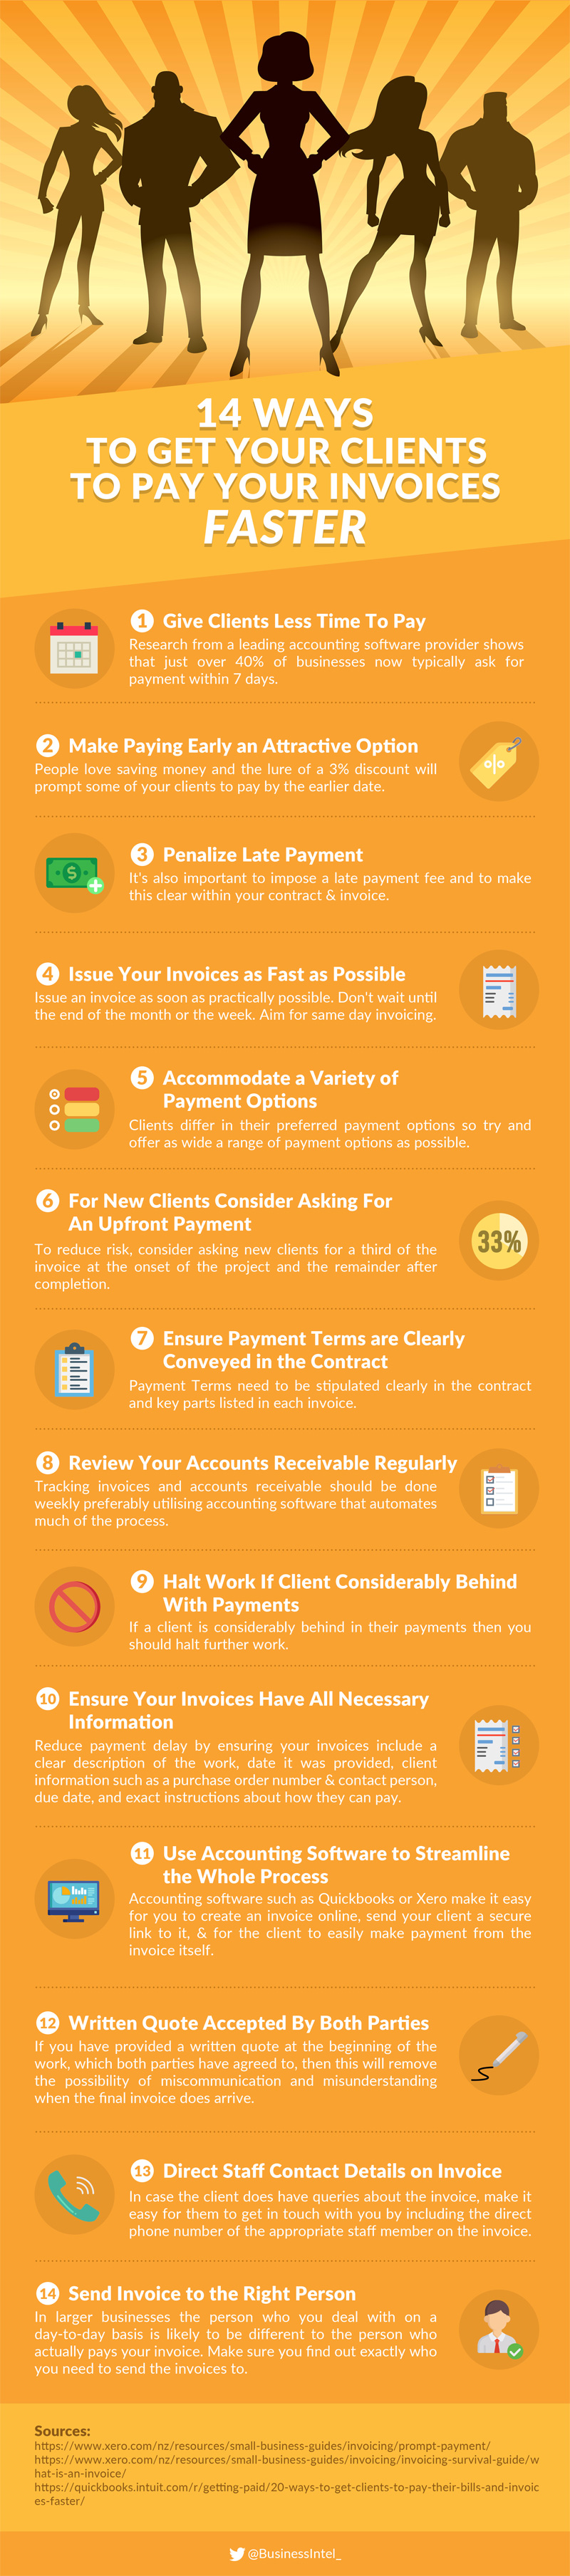 14 Ways To Get Your Clients to Pay Your Invoices Faster